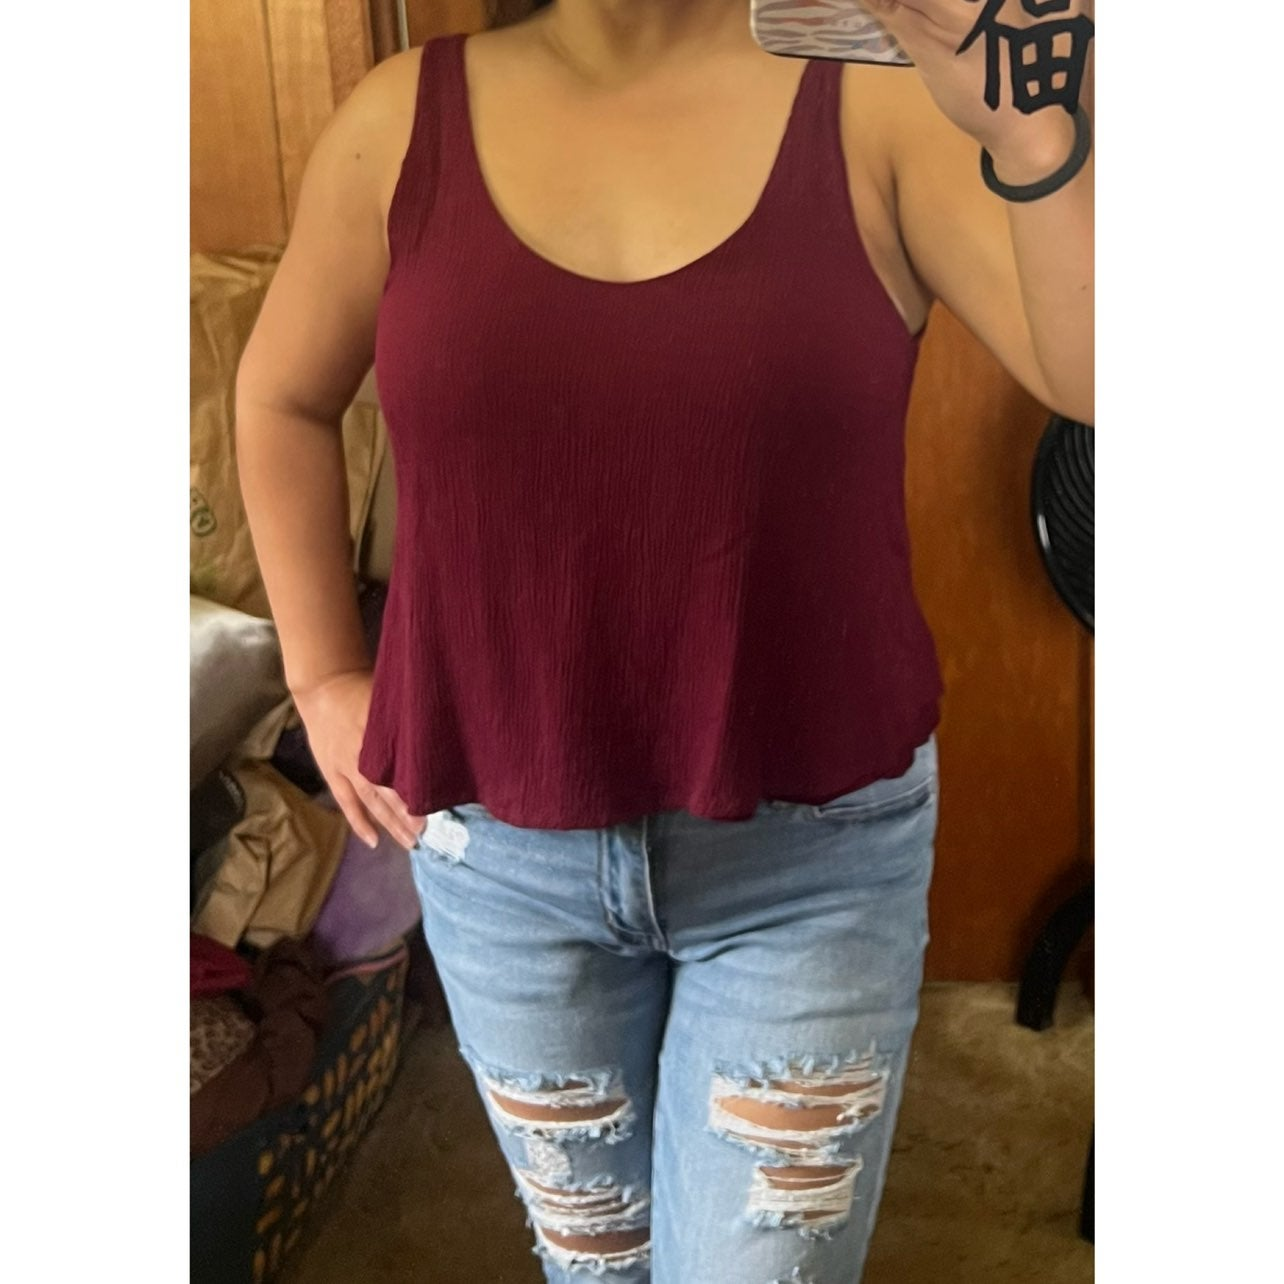 Ambiance Crop Tank Top, Small, BNWOT